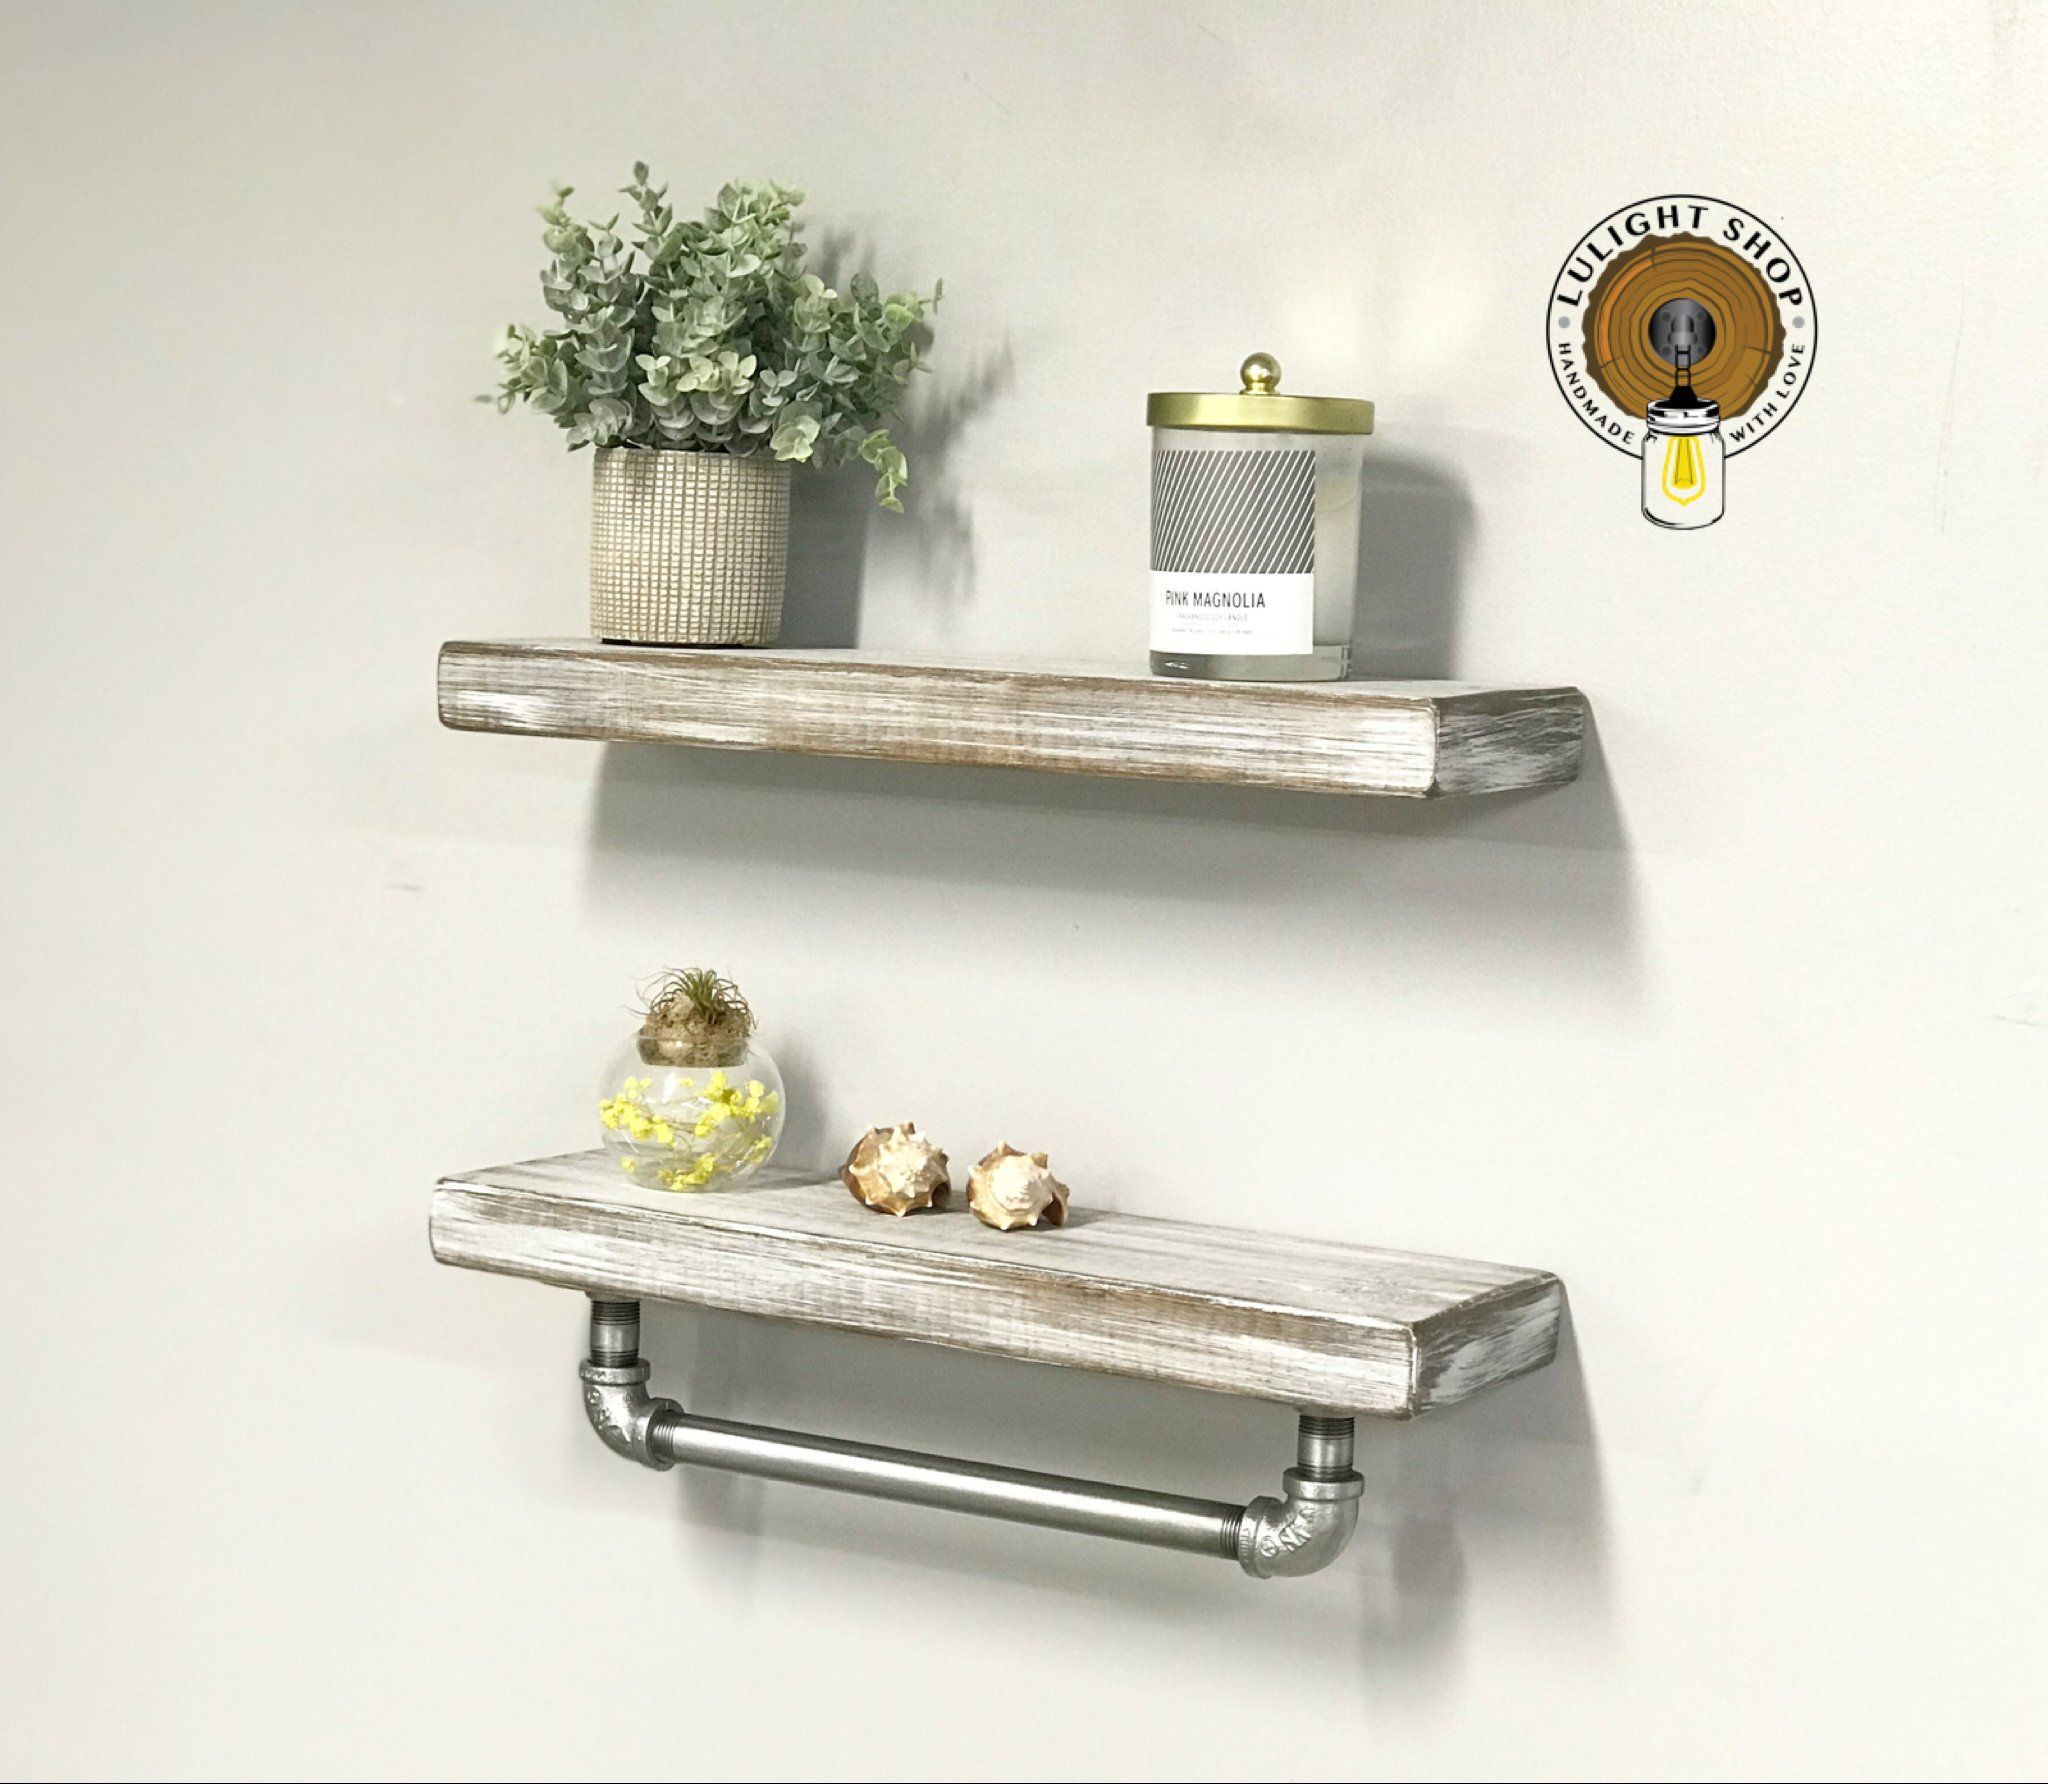 5 5 Deep Floating Shelves Set Wood Shelves Floating Shelf Light Whitewash Shelves Wall De With Images Floating Shelves Bathroom Furniture Storage Kitchen Wall Shelves